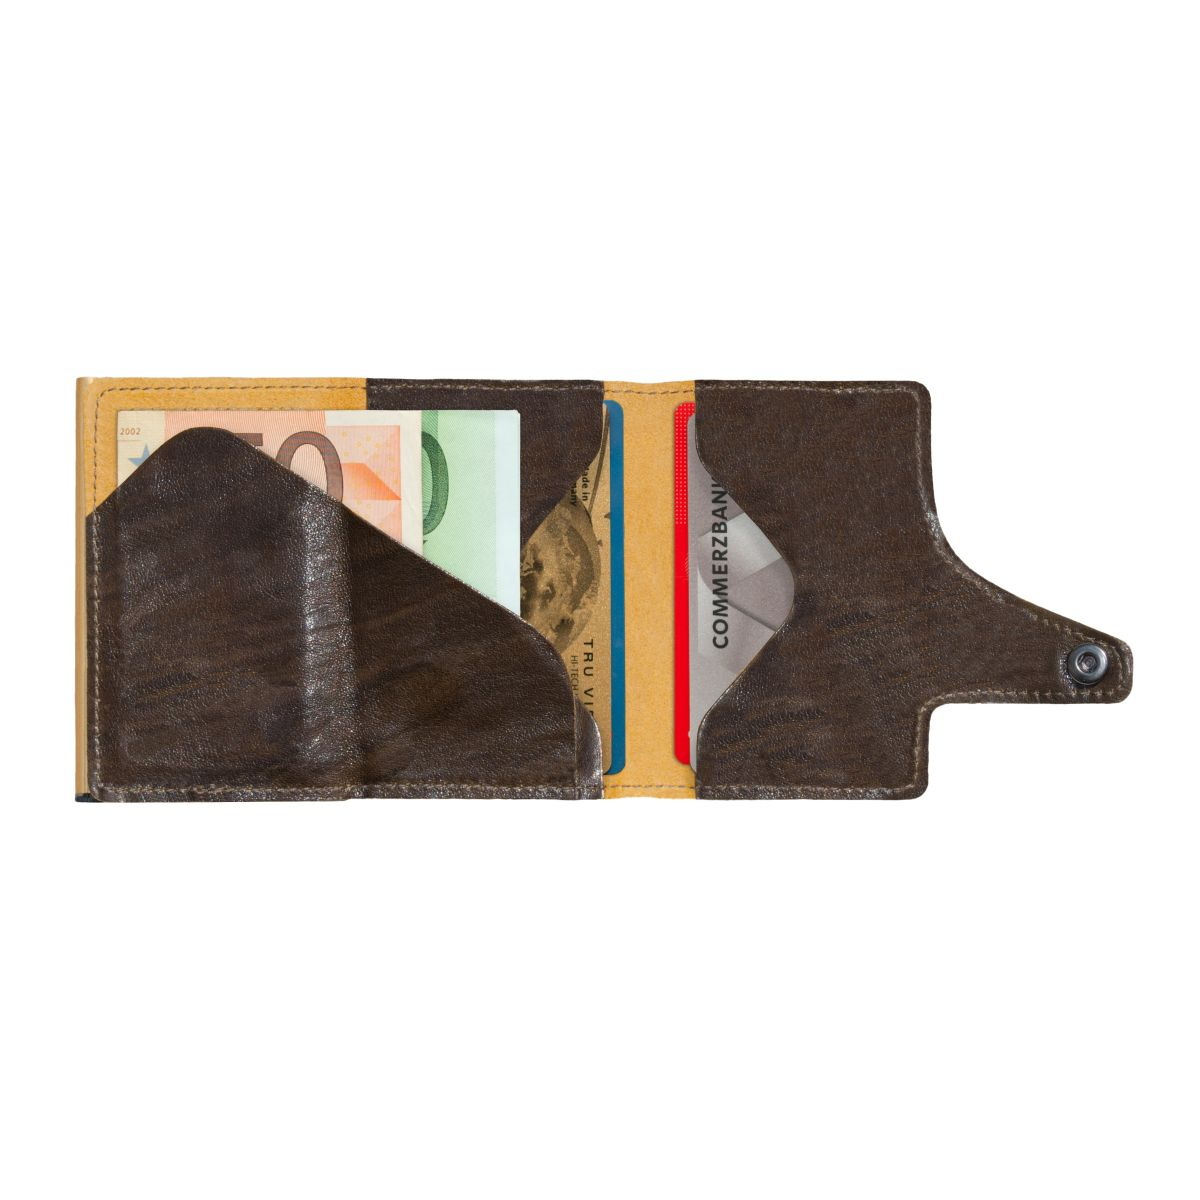 TRU VIRTU Click n Slide Wallet - Caramba Moss green / Gold